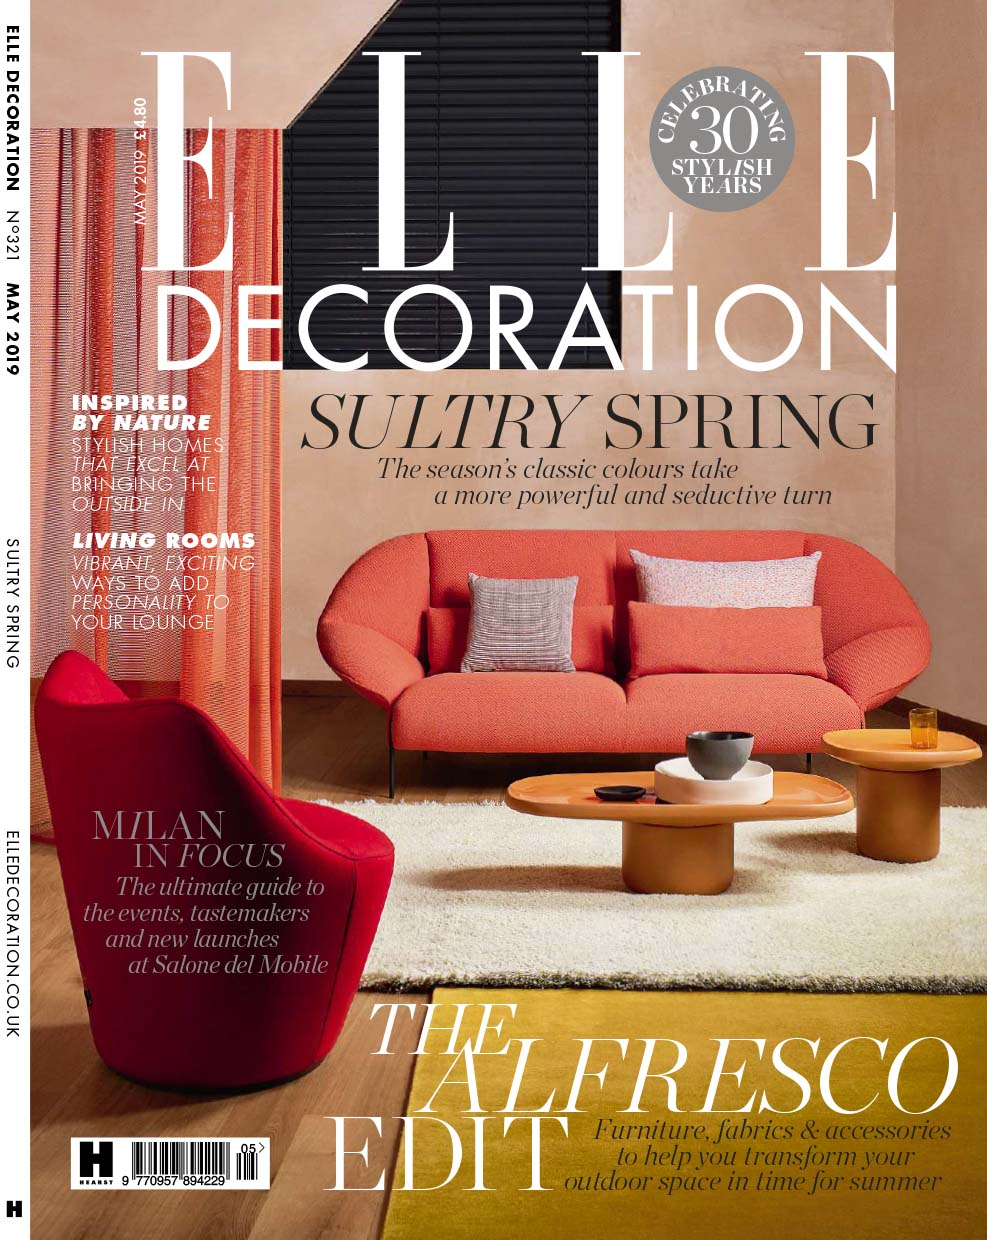 Elle Decoration magazine front cover styled and conceived by Sania Pell, Contributing Interior Stylist. May 2019 issue. Photographer Beth Evans.